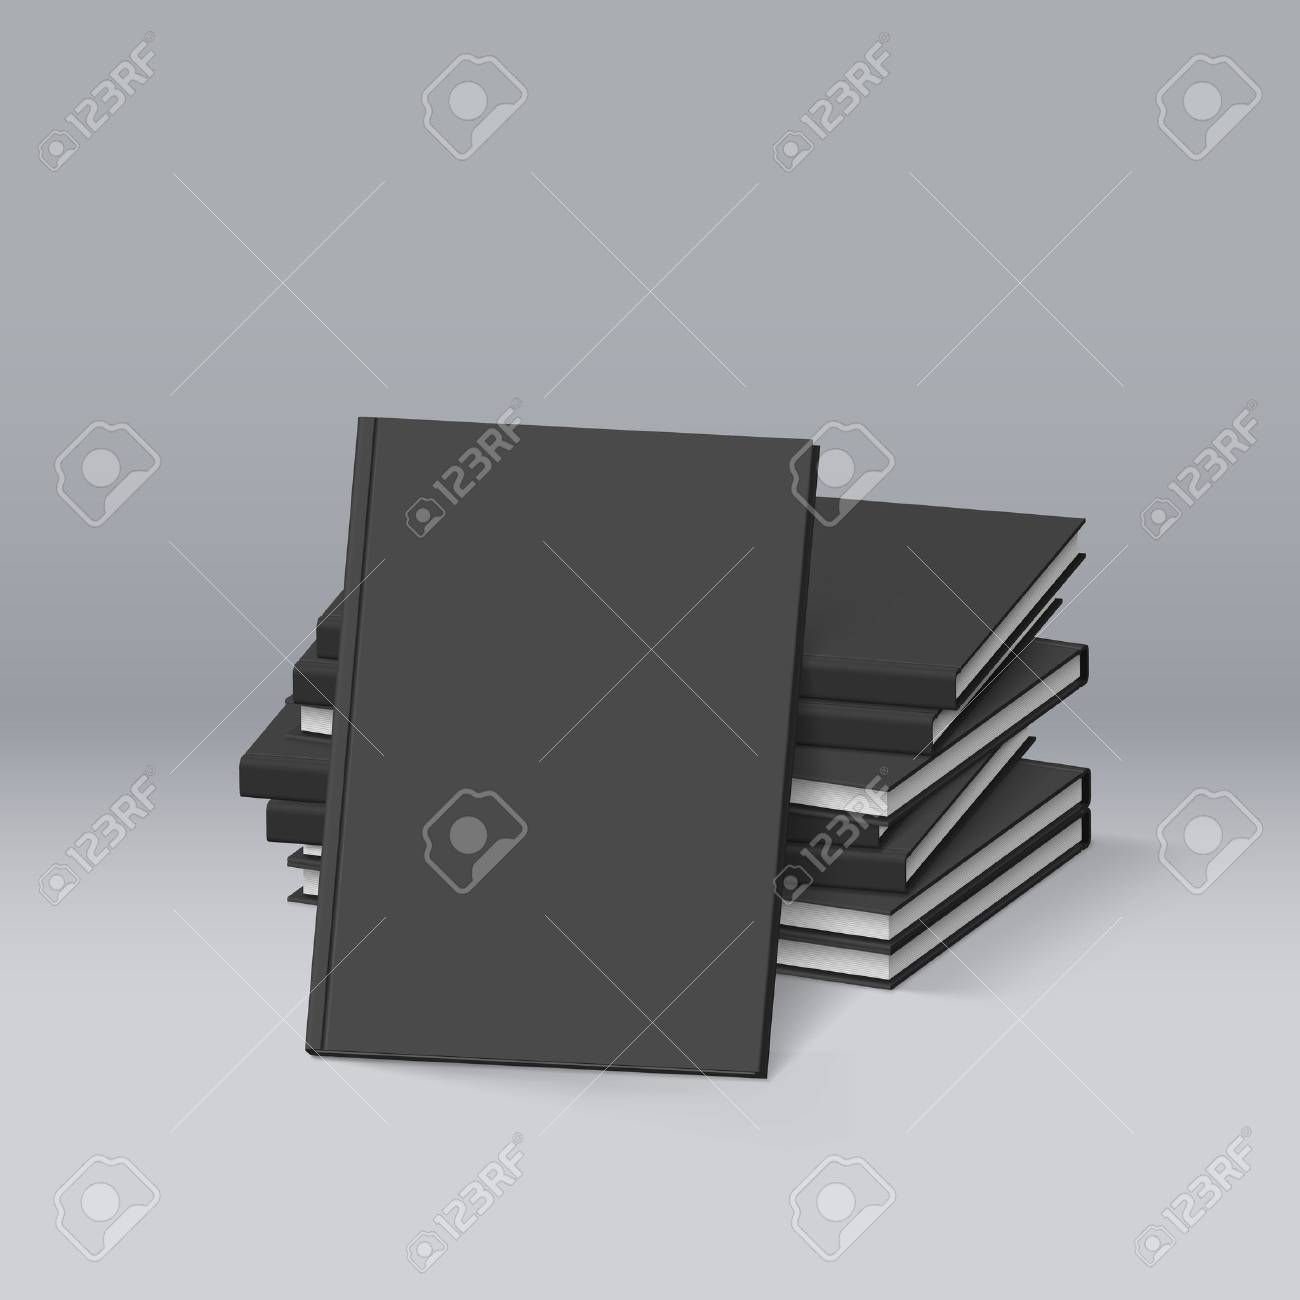 stack of blank black books mockup template for design royalty free